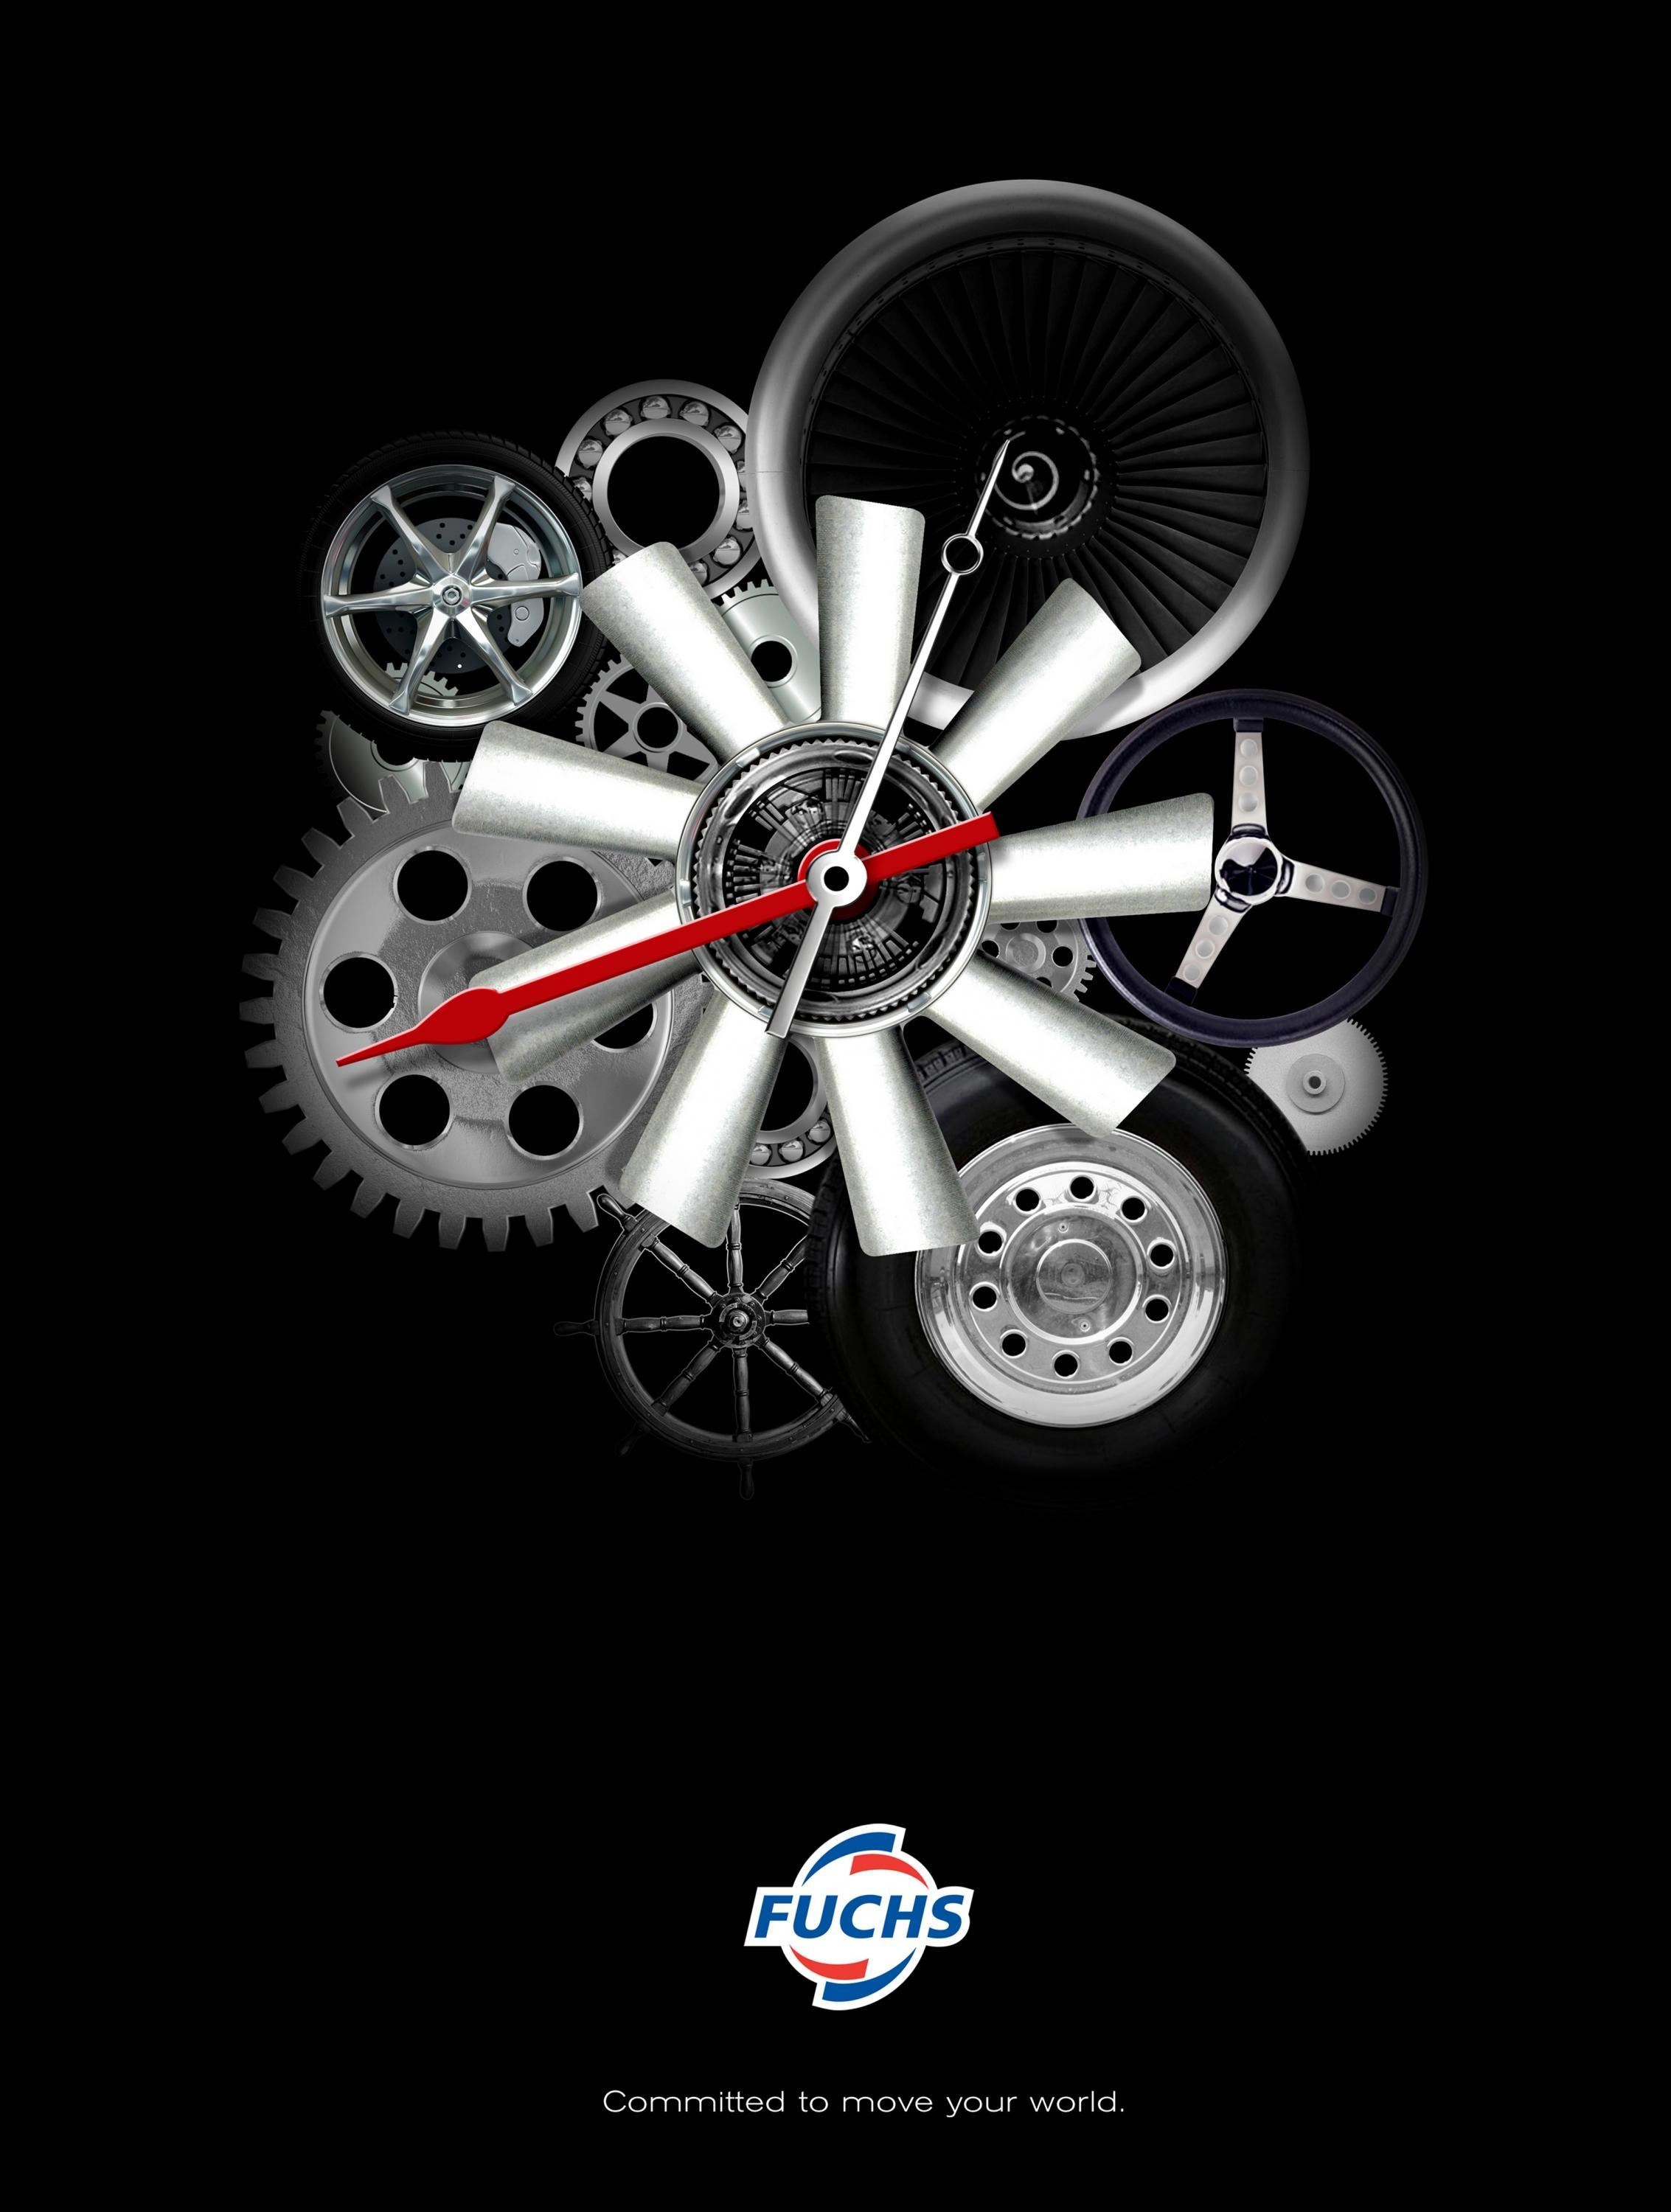 Adeevee | Only selected creativity - Fuchs Oil Motor Oil: Clock